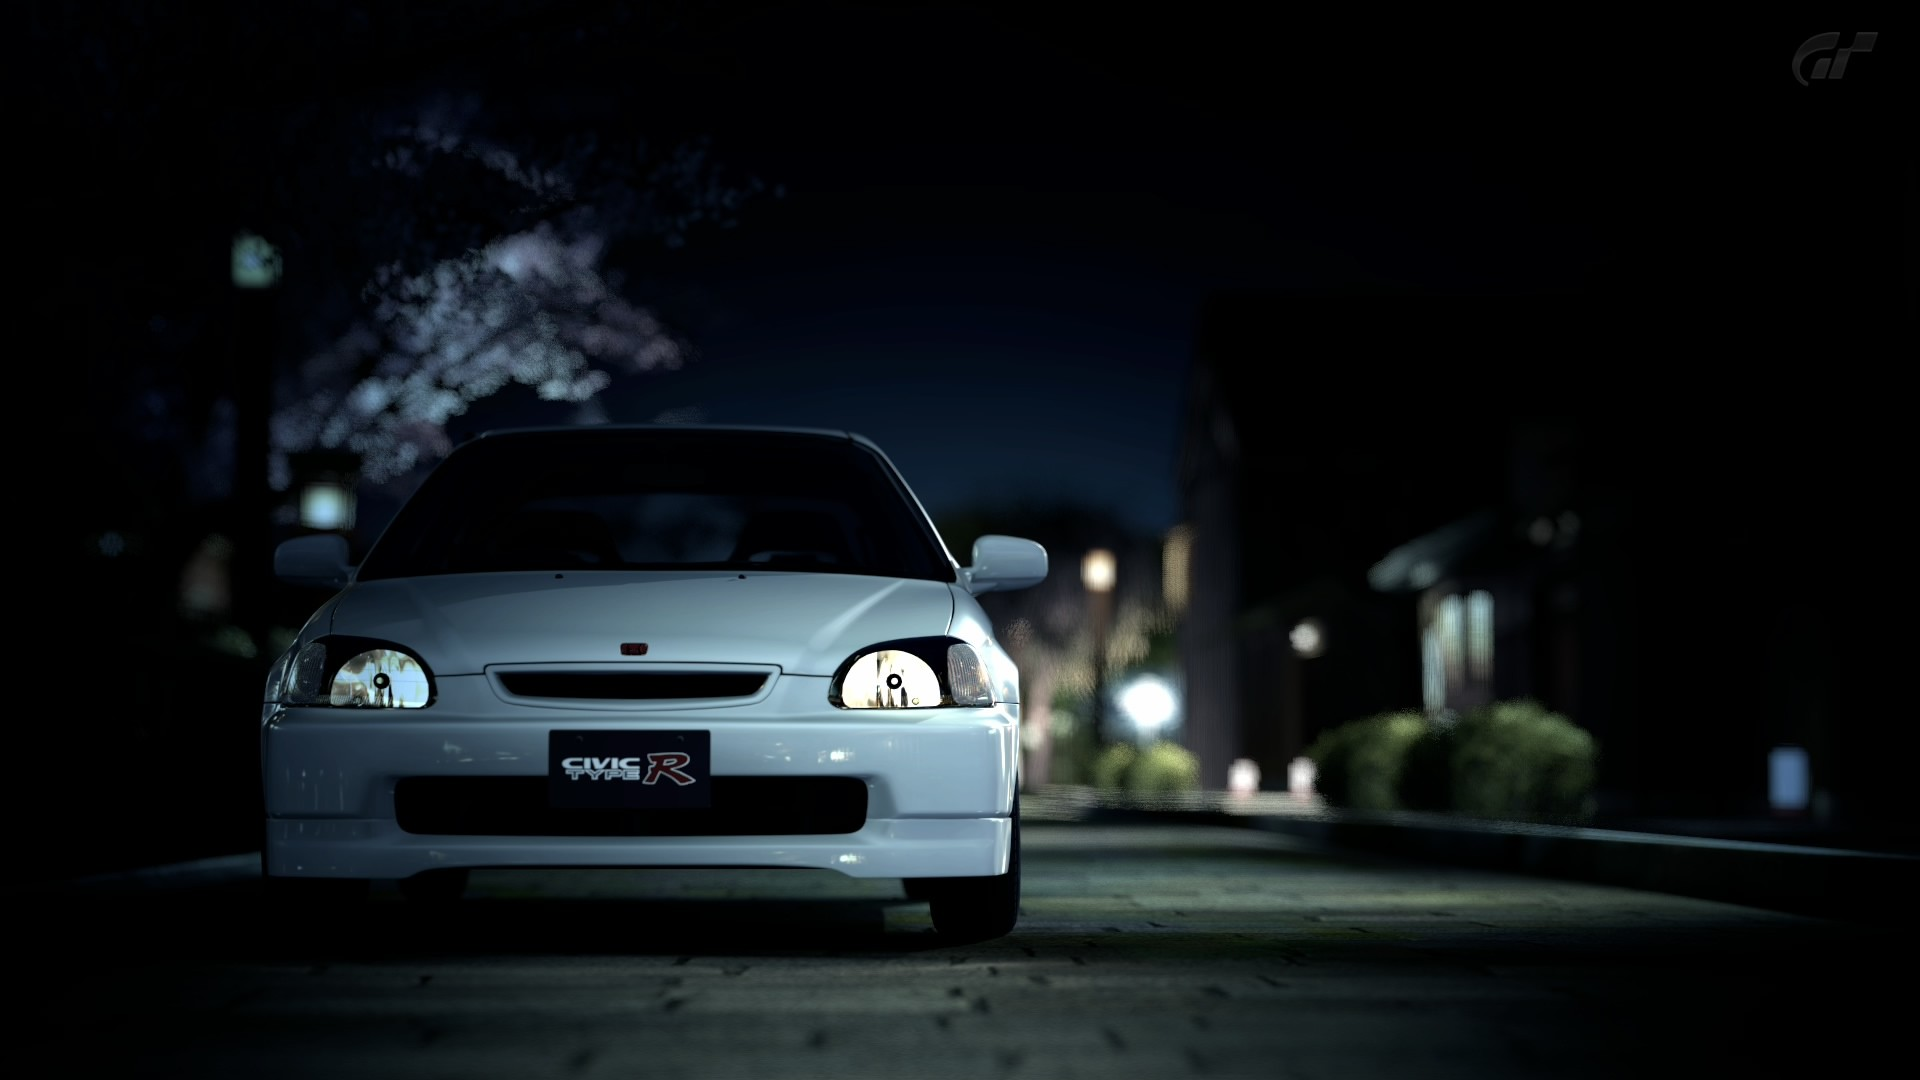 honda civic wallpaper size  Honda Civic HD Wallpaper | Background Image | 1920x1080 | ID:631562 ...